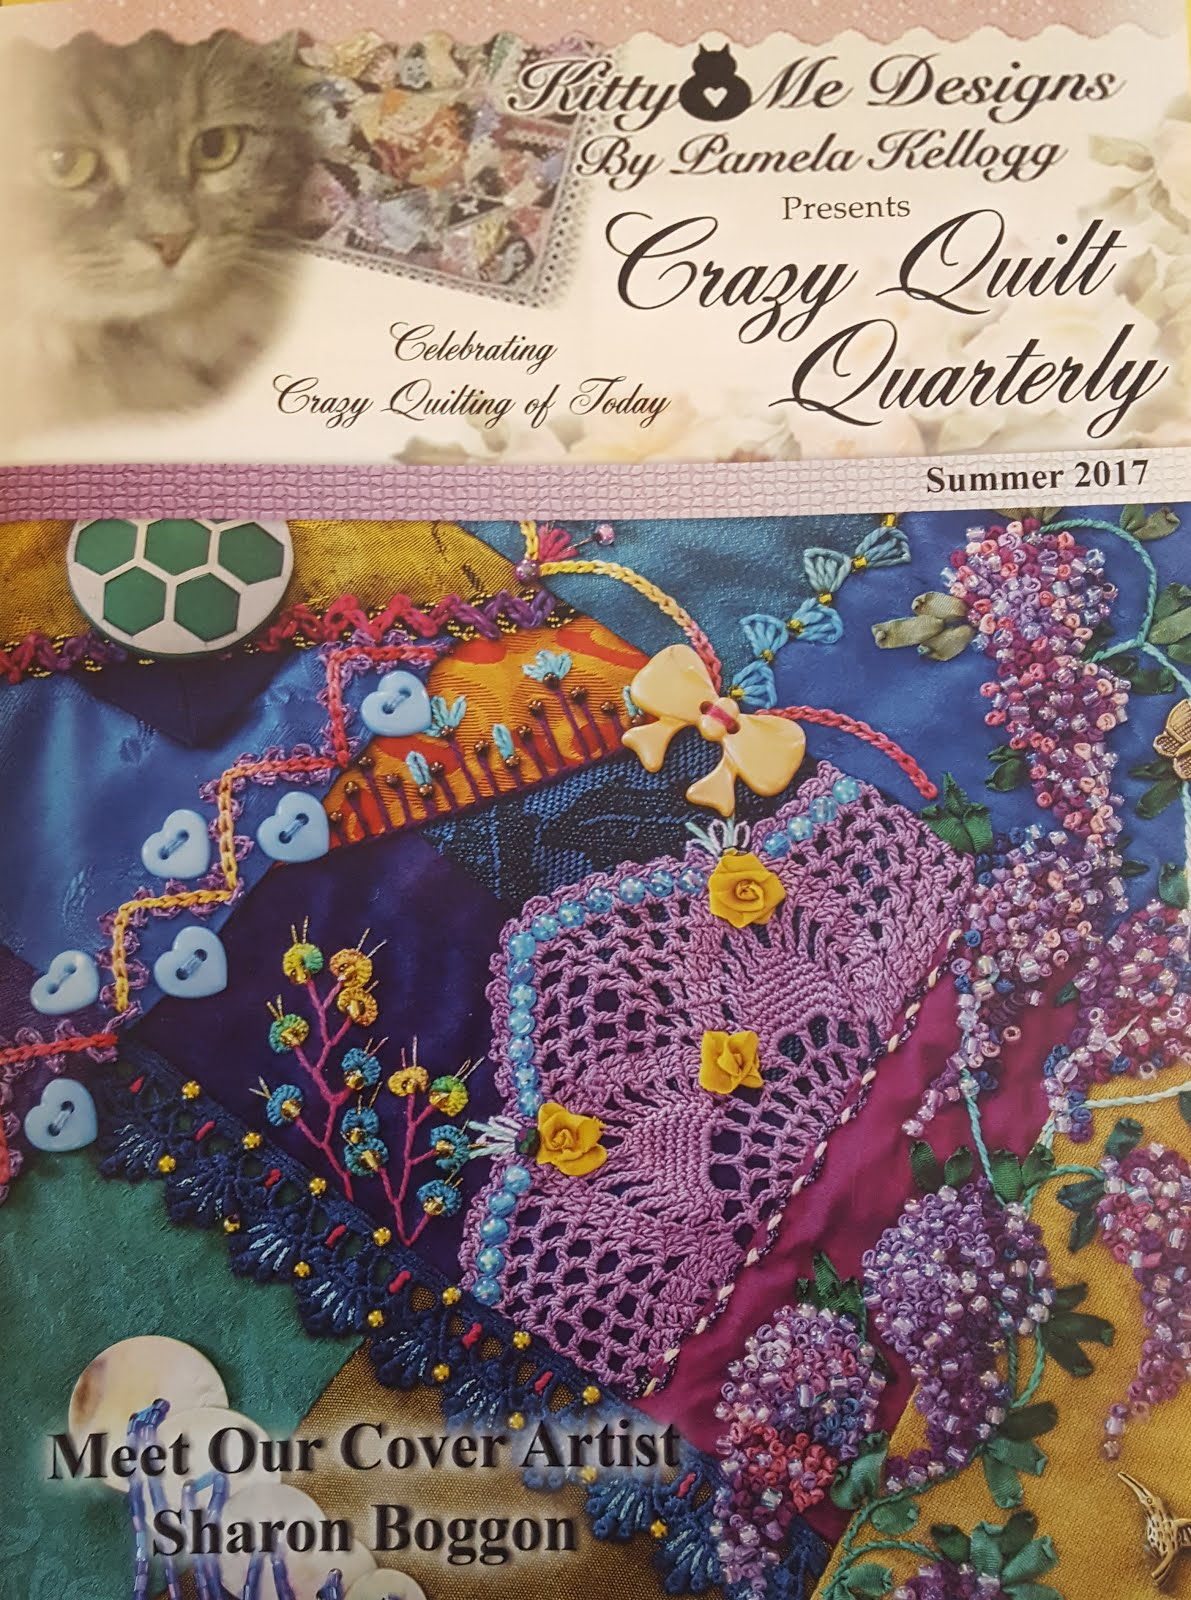 Crazy Quilt Quarterly, Summer 2017